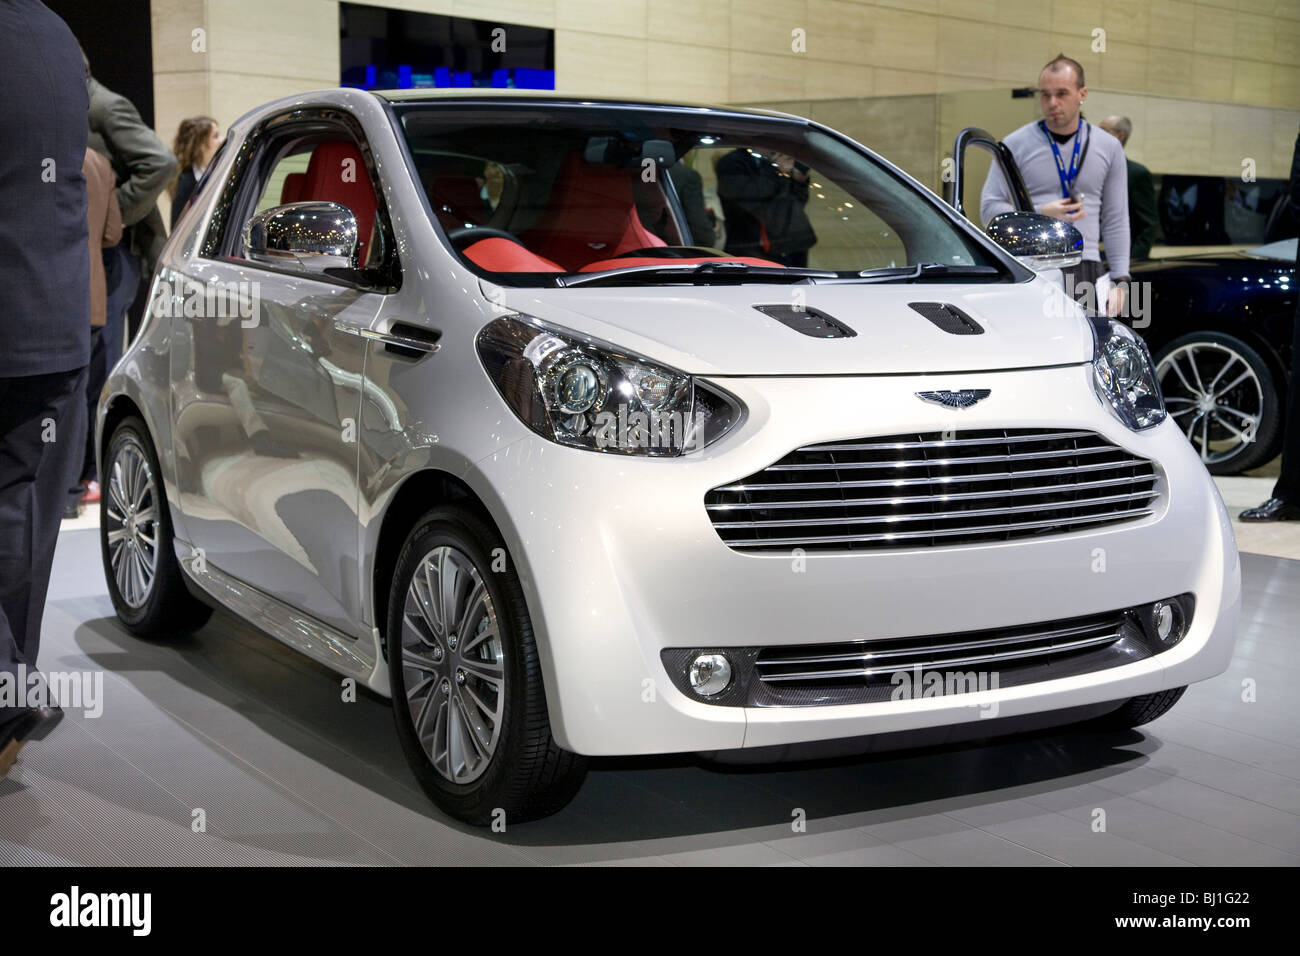 Genial Aston Martin Cygnet Toyota IQ Based City Car At A Motor Show